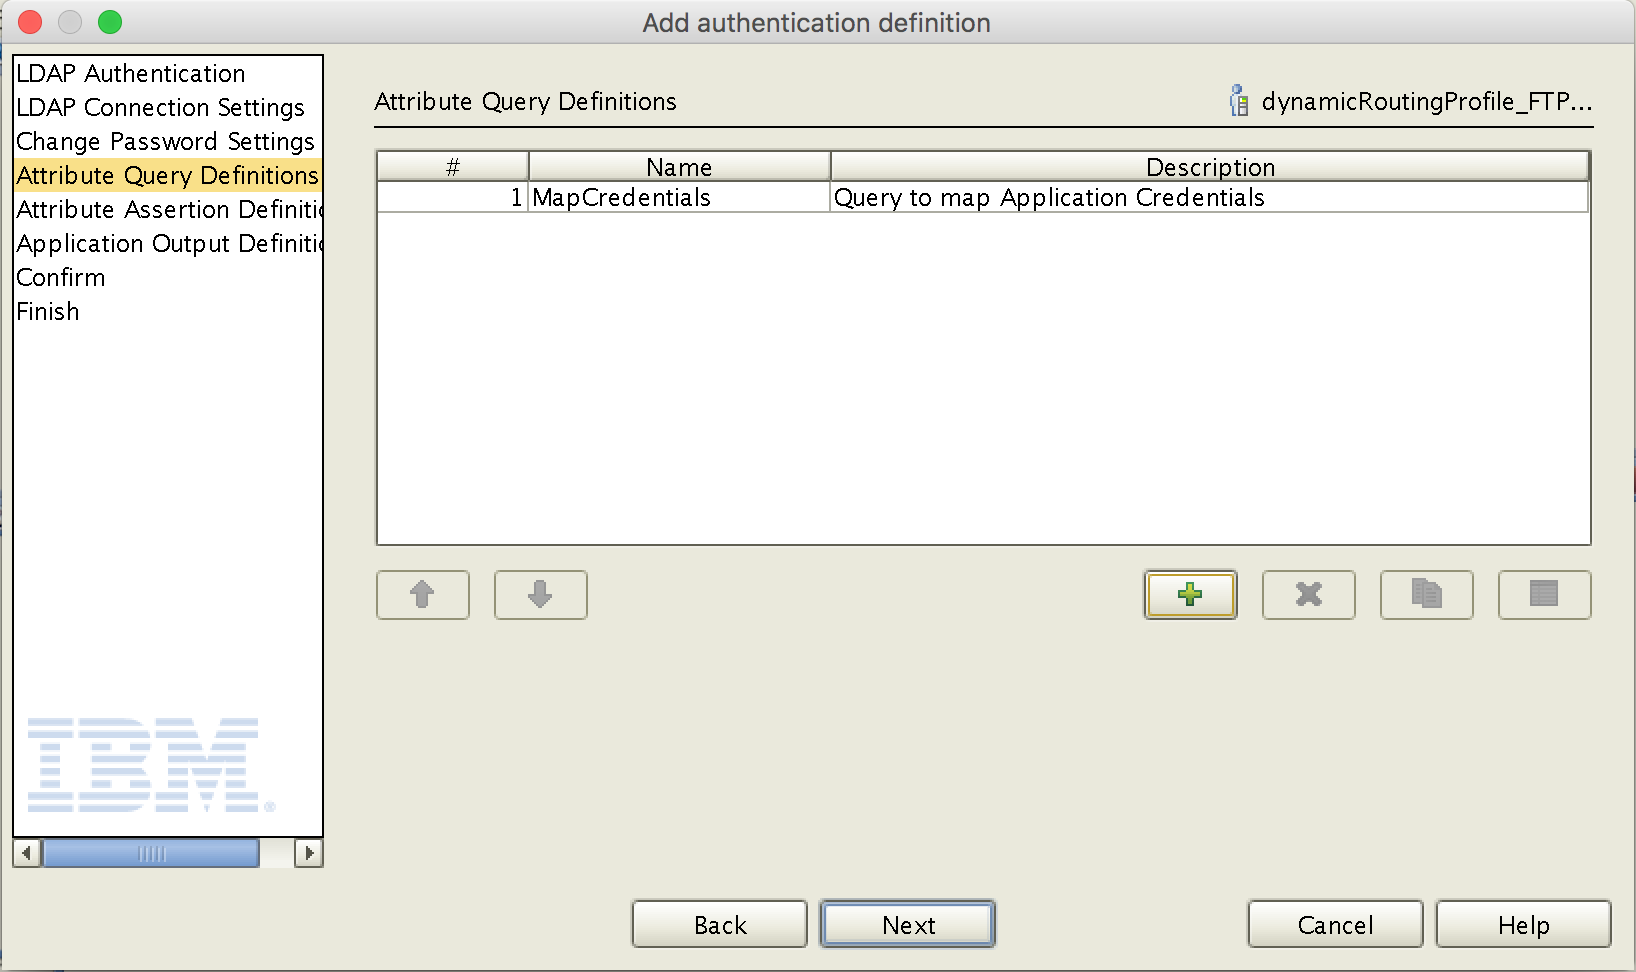 Authentication Definition - Attribute Query Definition created